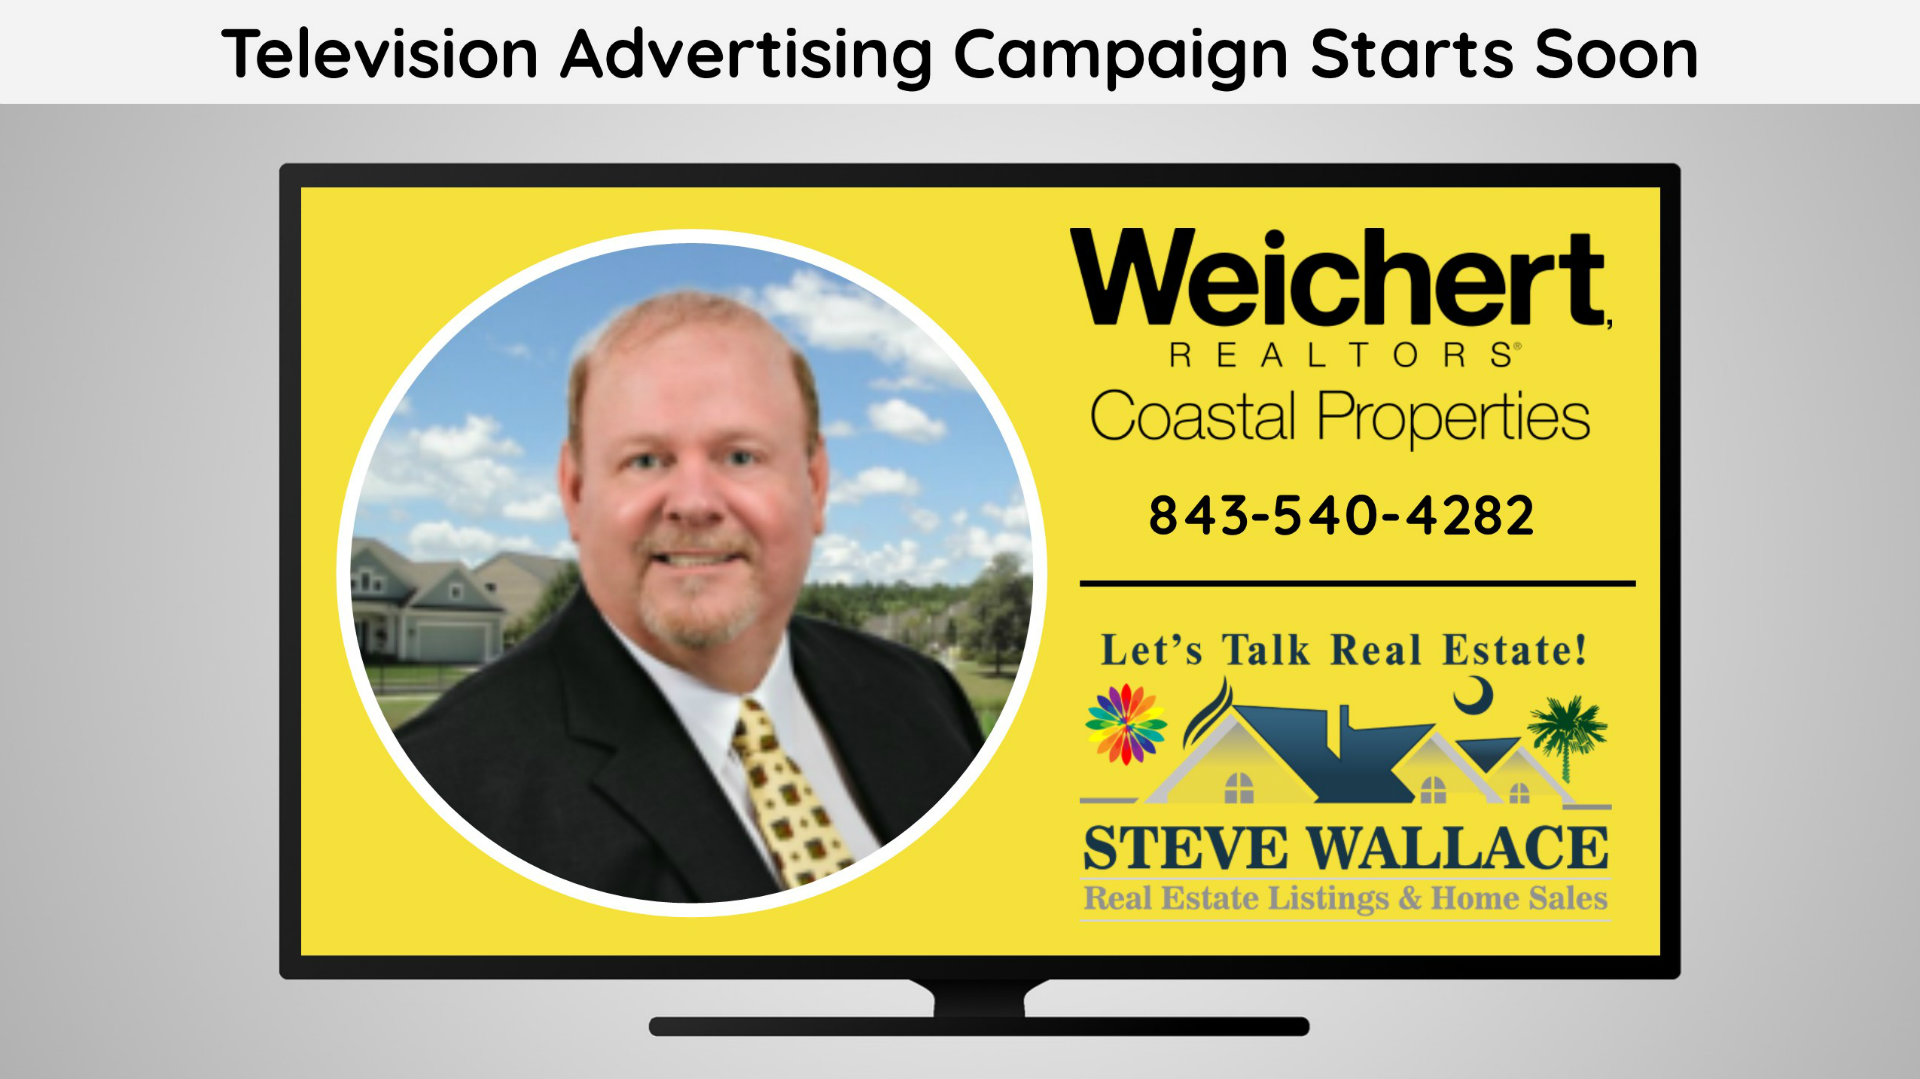 Tv Ad Campaign, Bluffton, SC, Realtor, Steve Wallace, Real Estate, Weichert Realtors